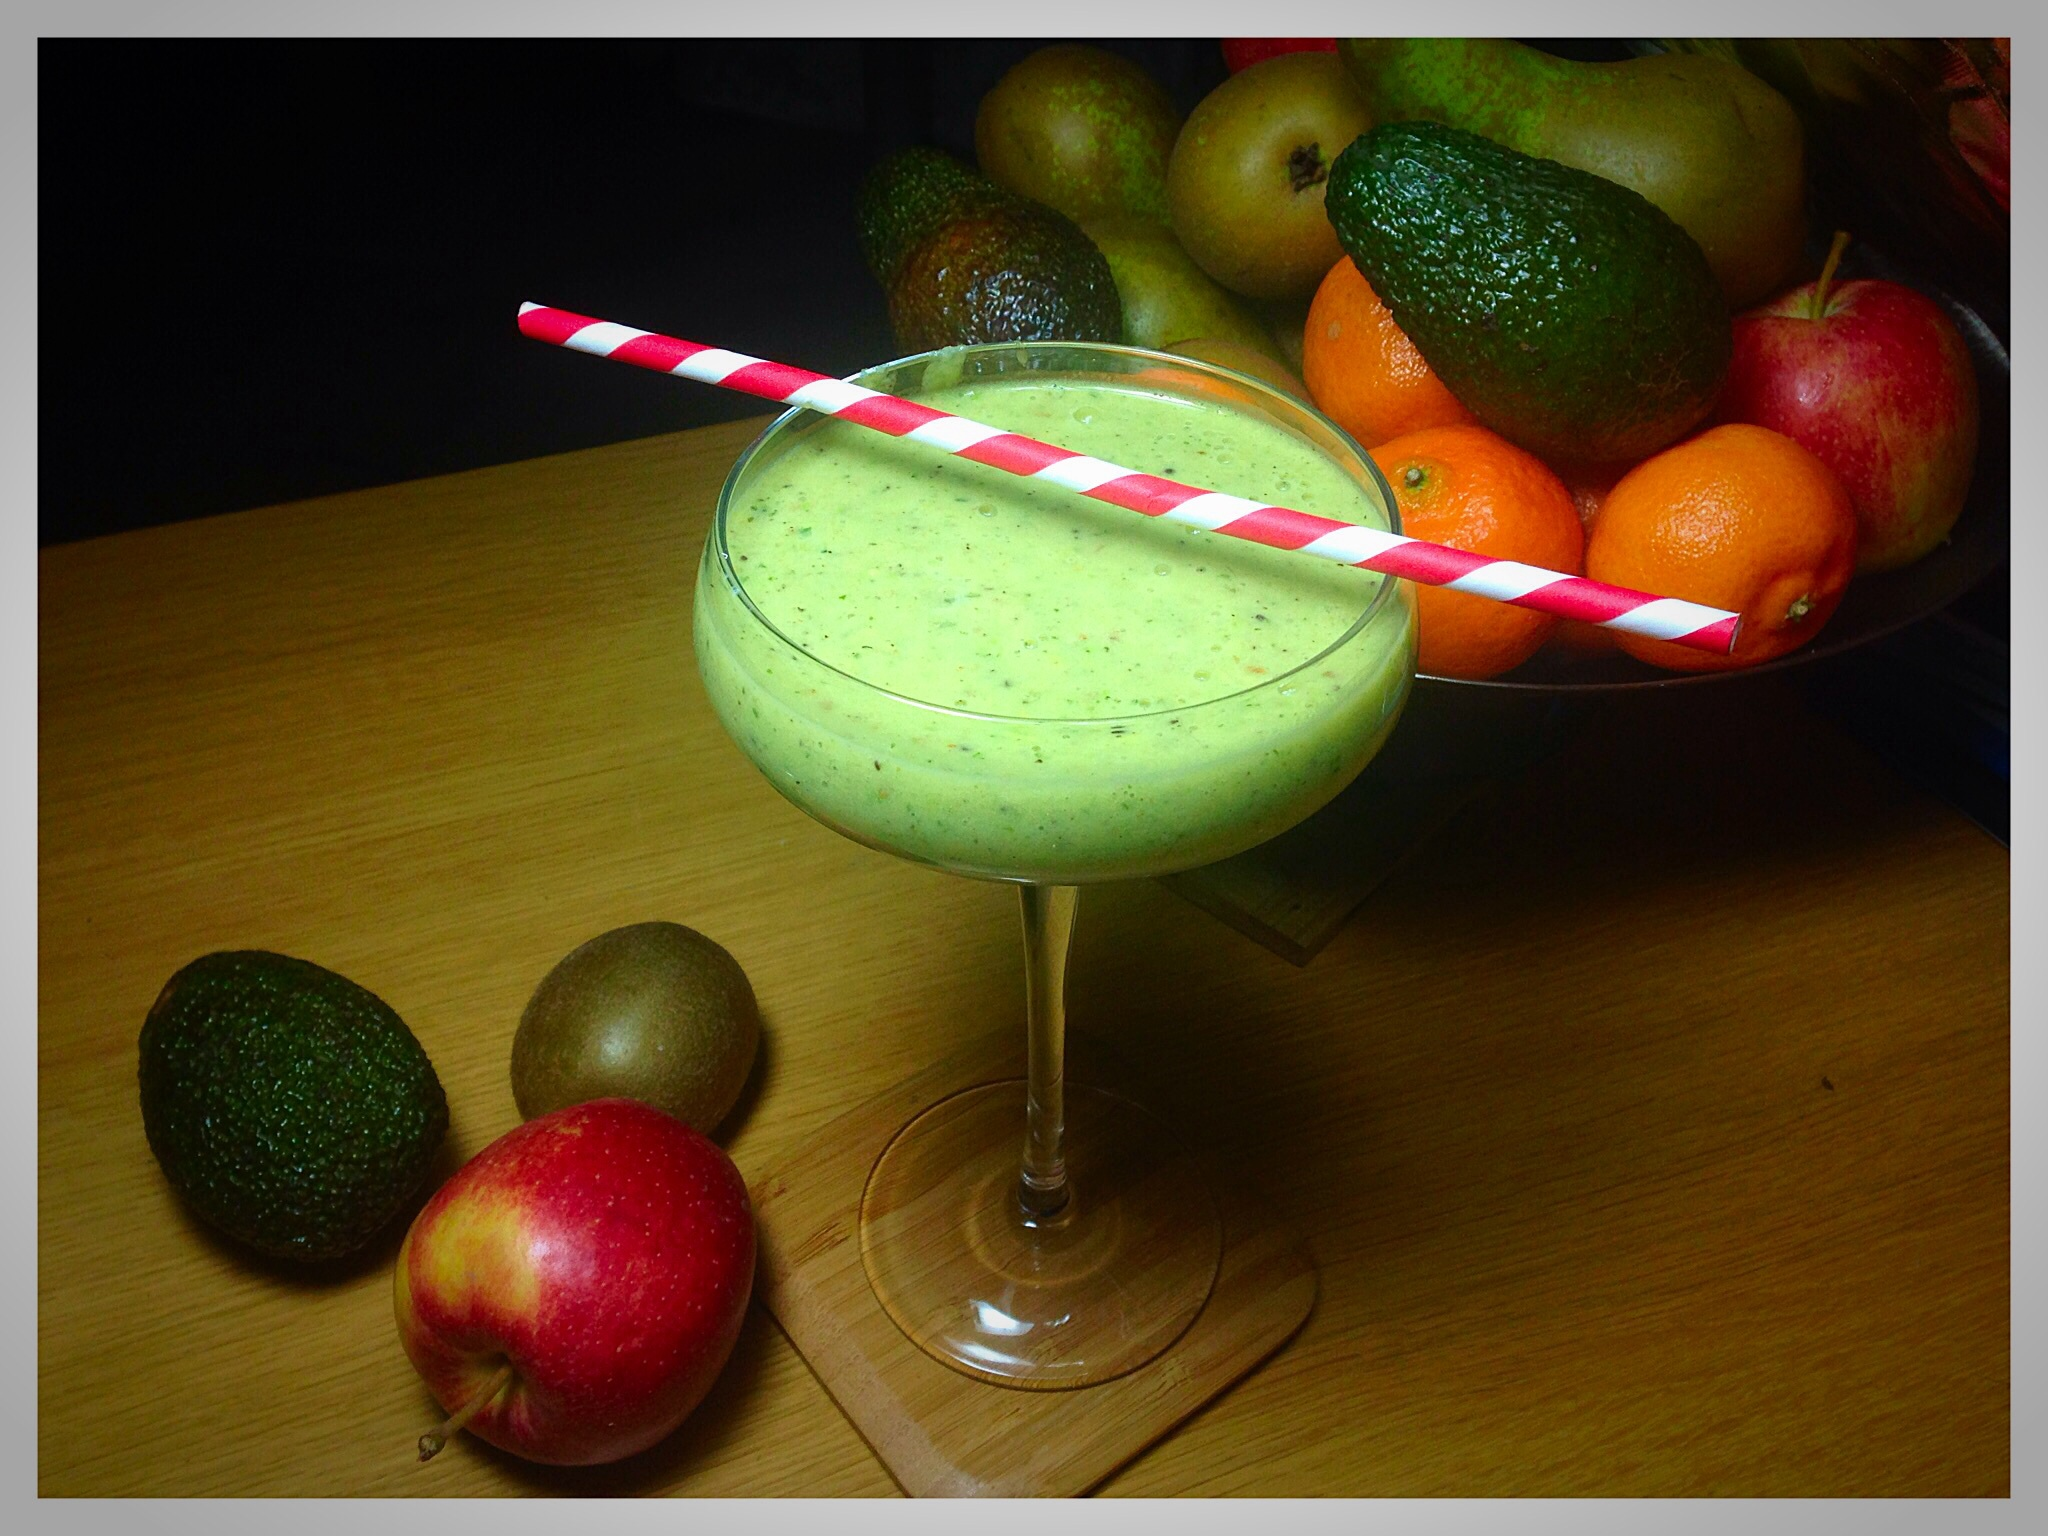 Recipe: Apple, Avocado and Ginger Smoothie